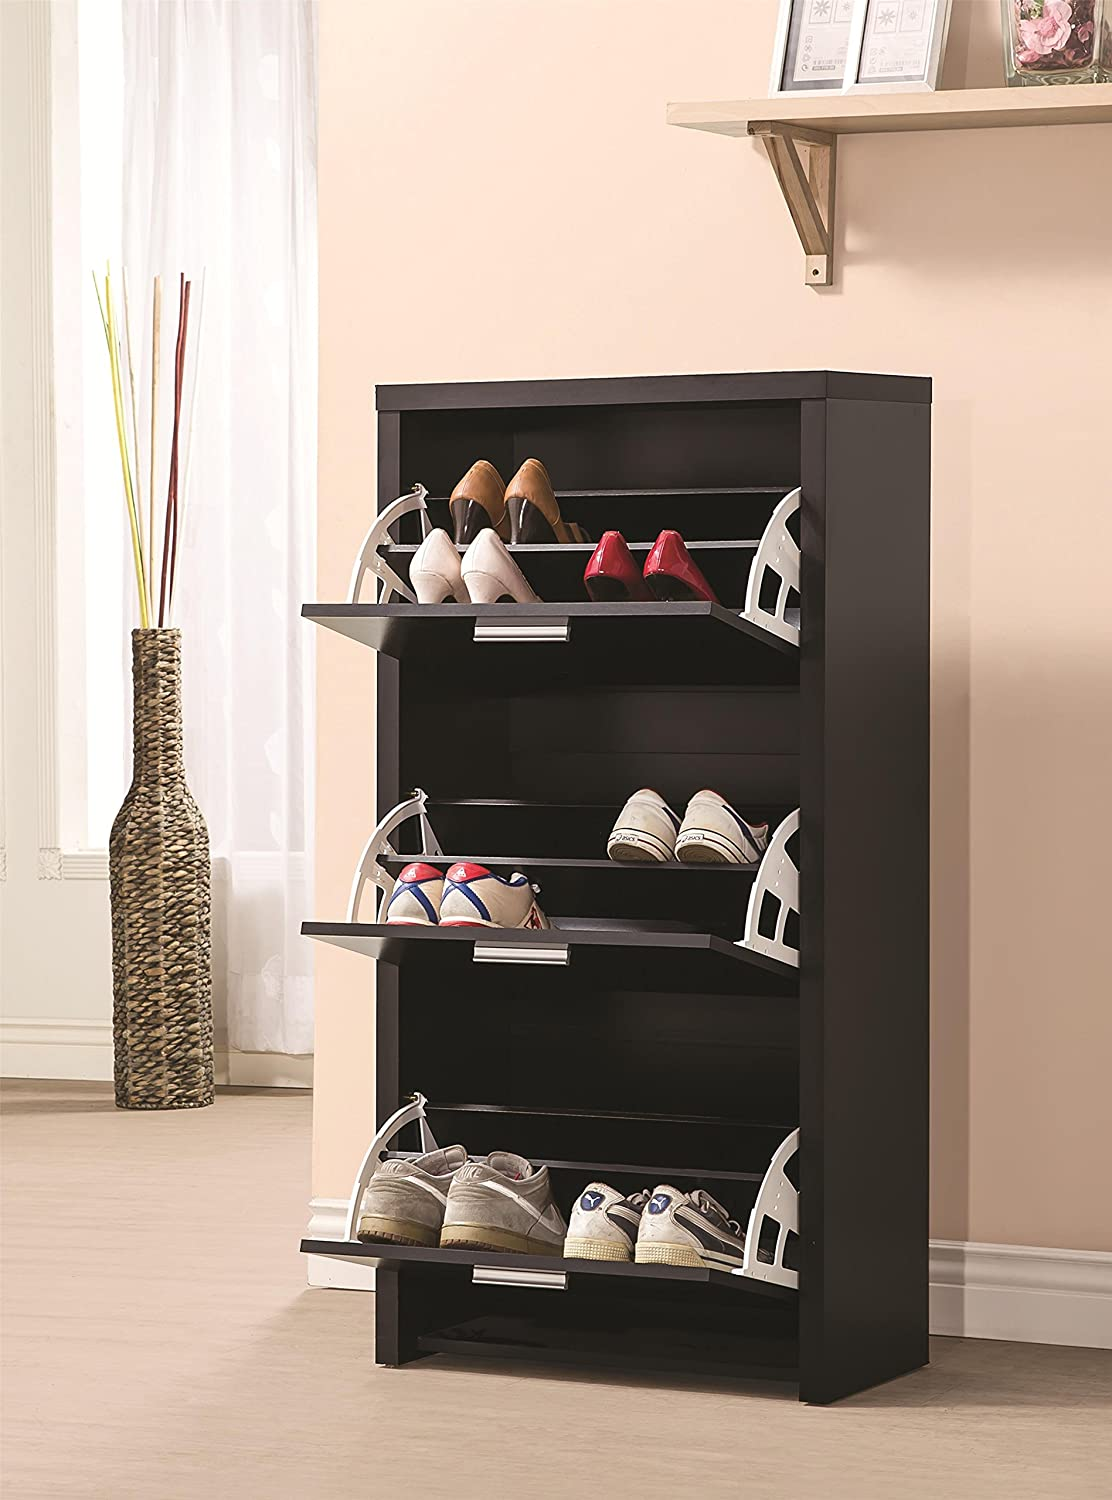 shoes cabinets furniture. amazoncom coaster 900604 home furnishings shoe cabinet black kitchen u0026 dining shoes cabinets furniture m